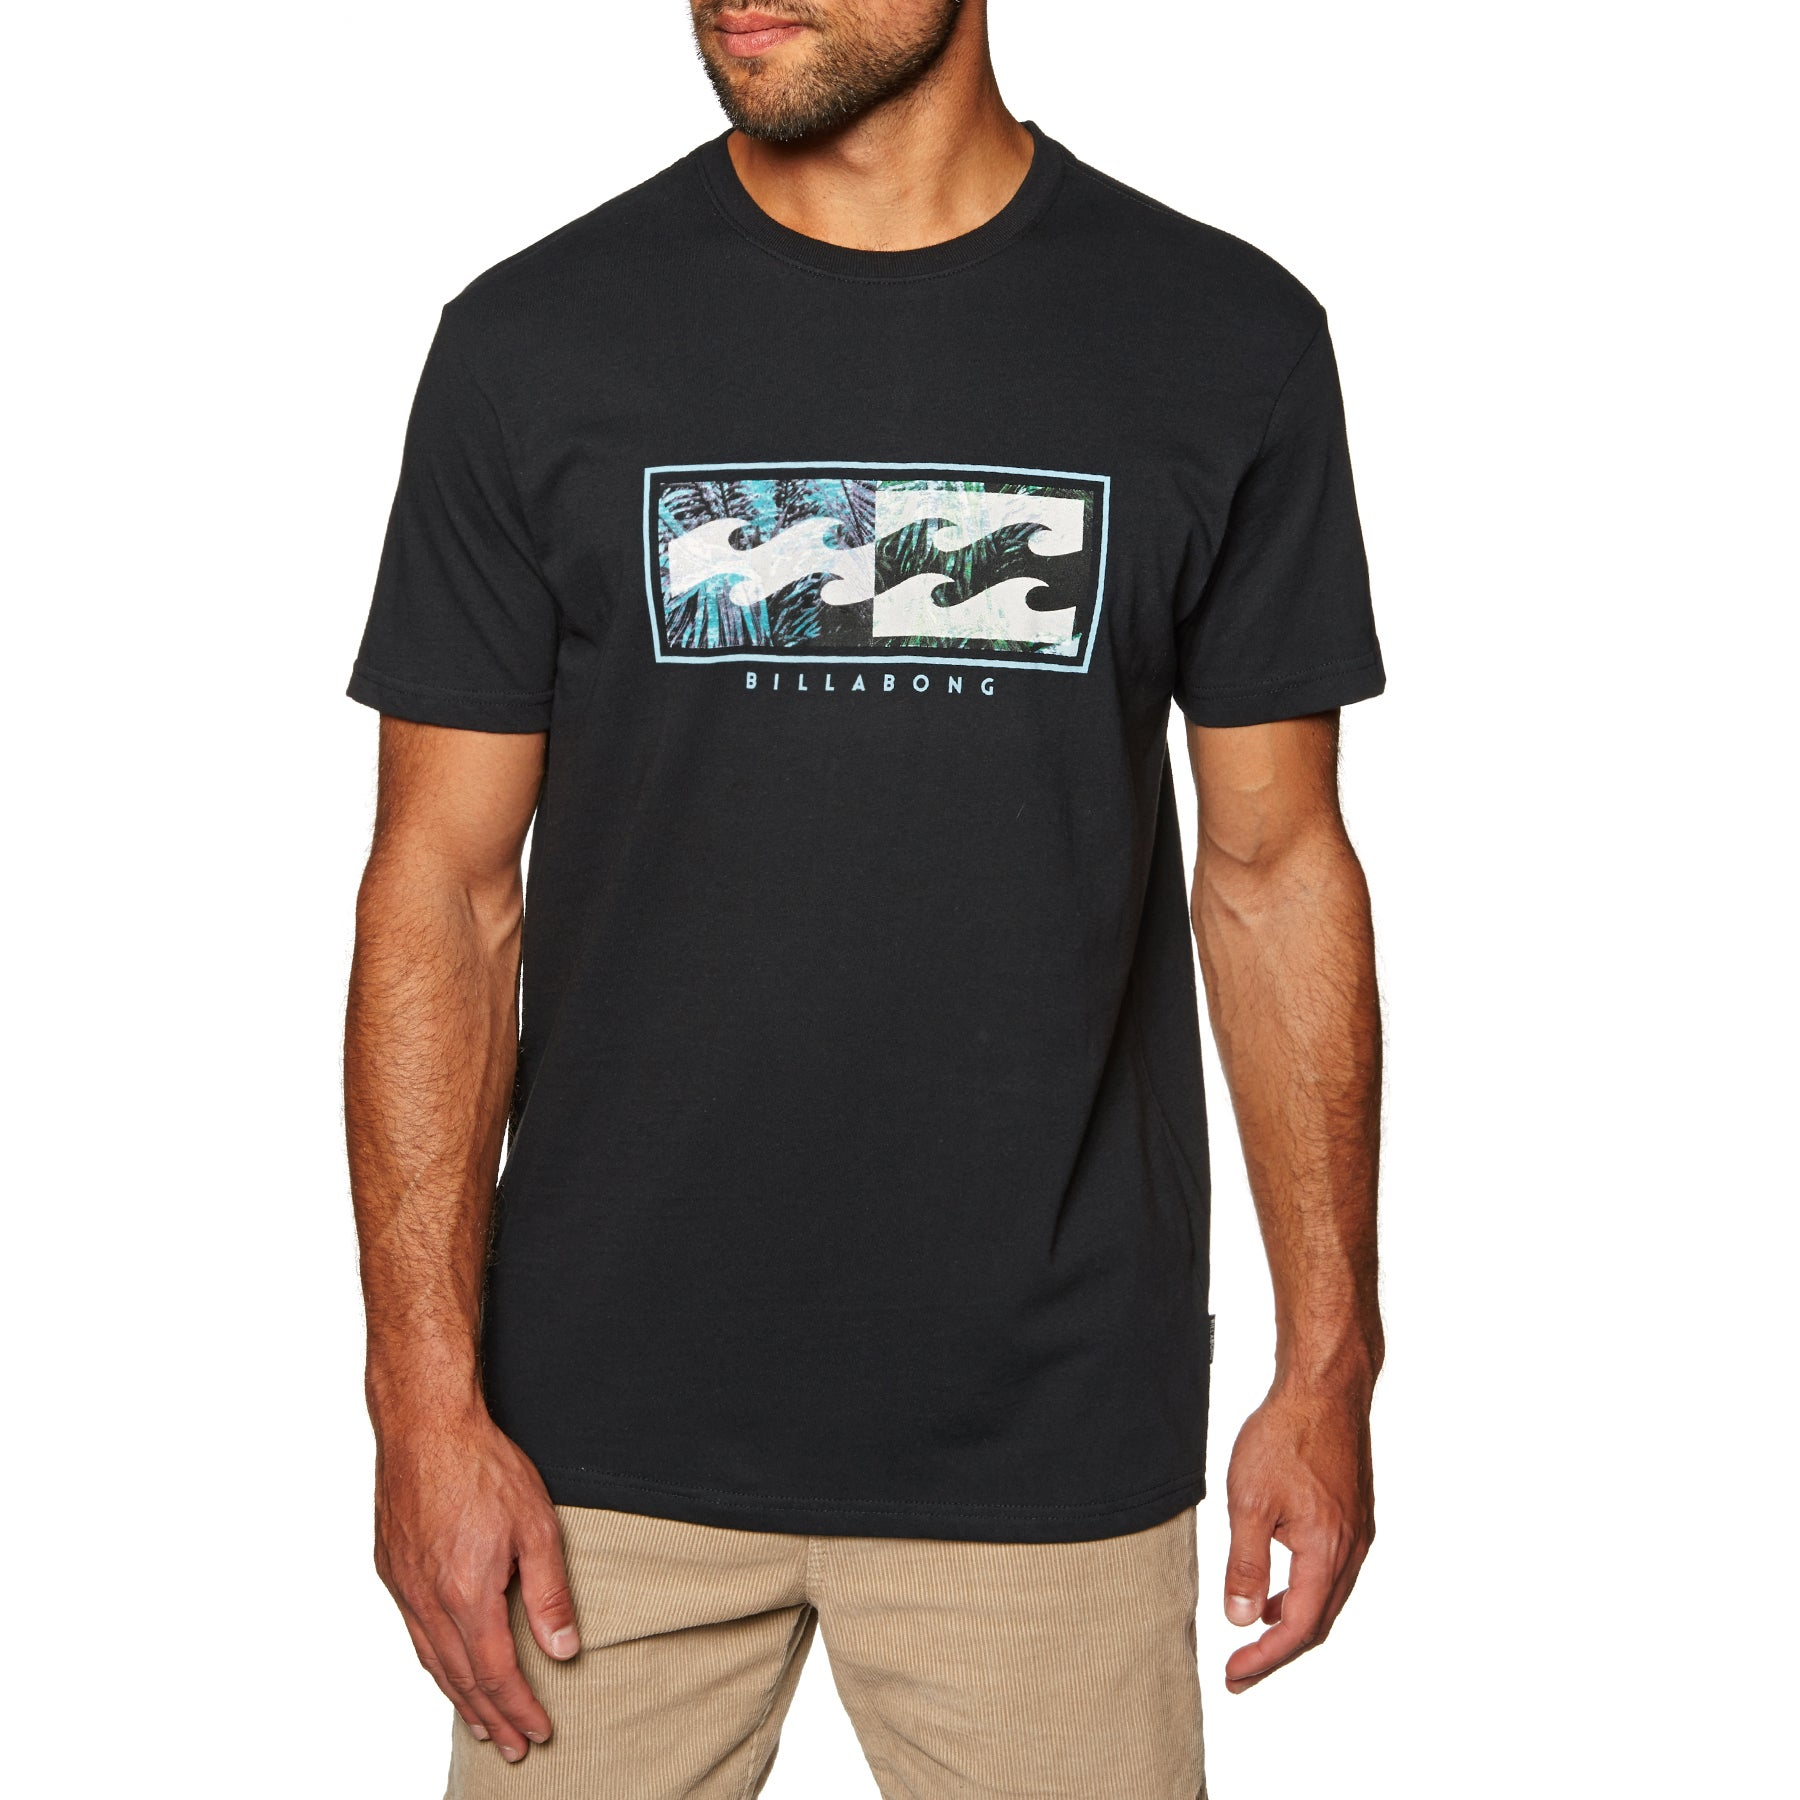 ab239505f5 Billabong Inversed Short Sleeve T-Shirt - Free Delivery options on All  Orders from Surfdome